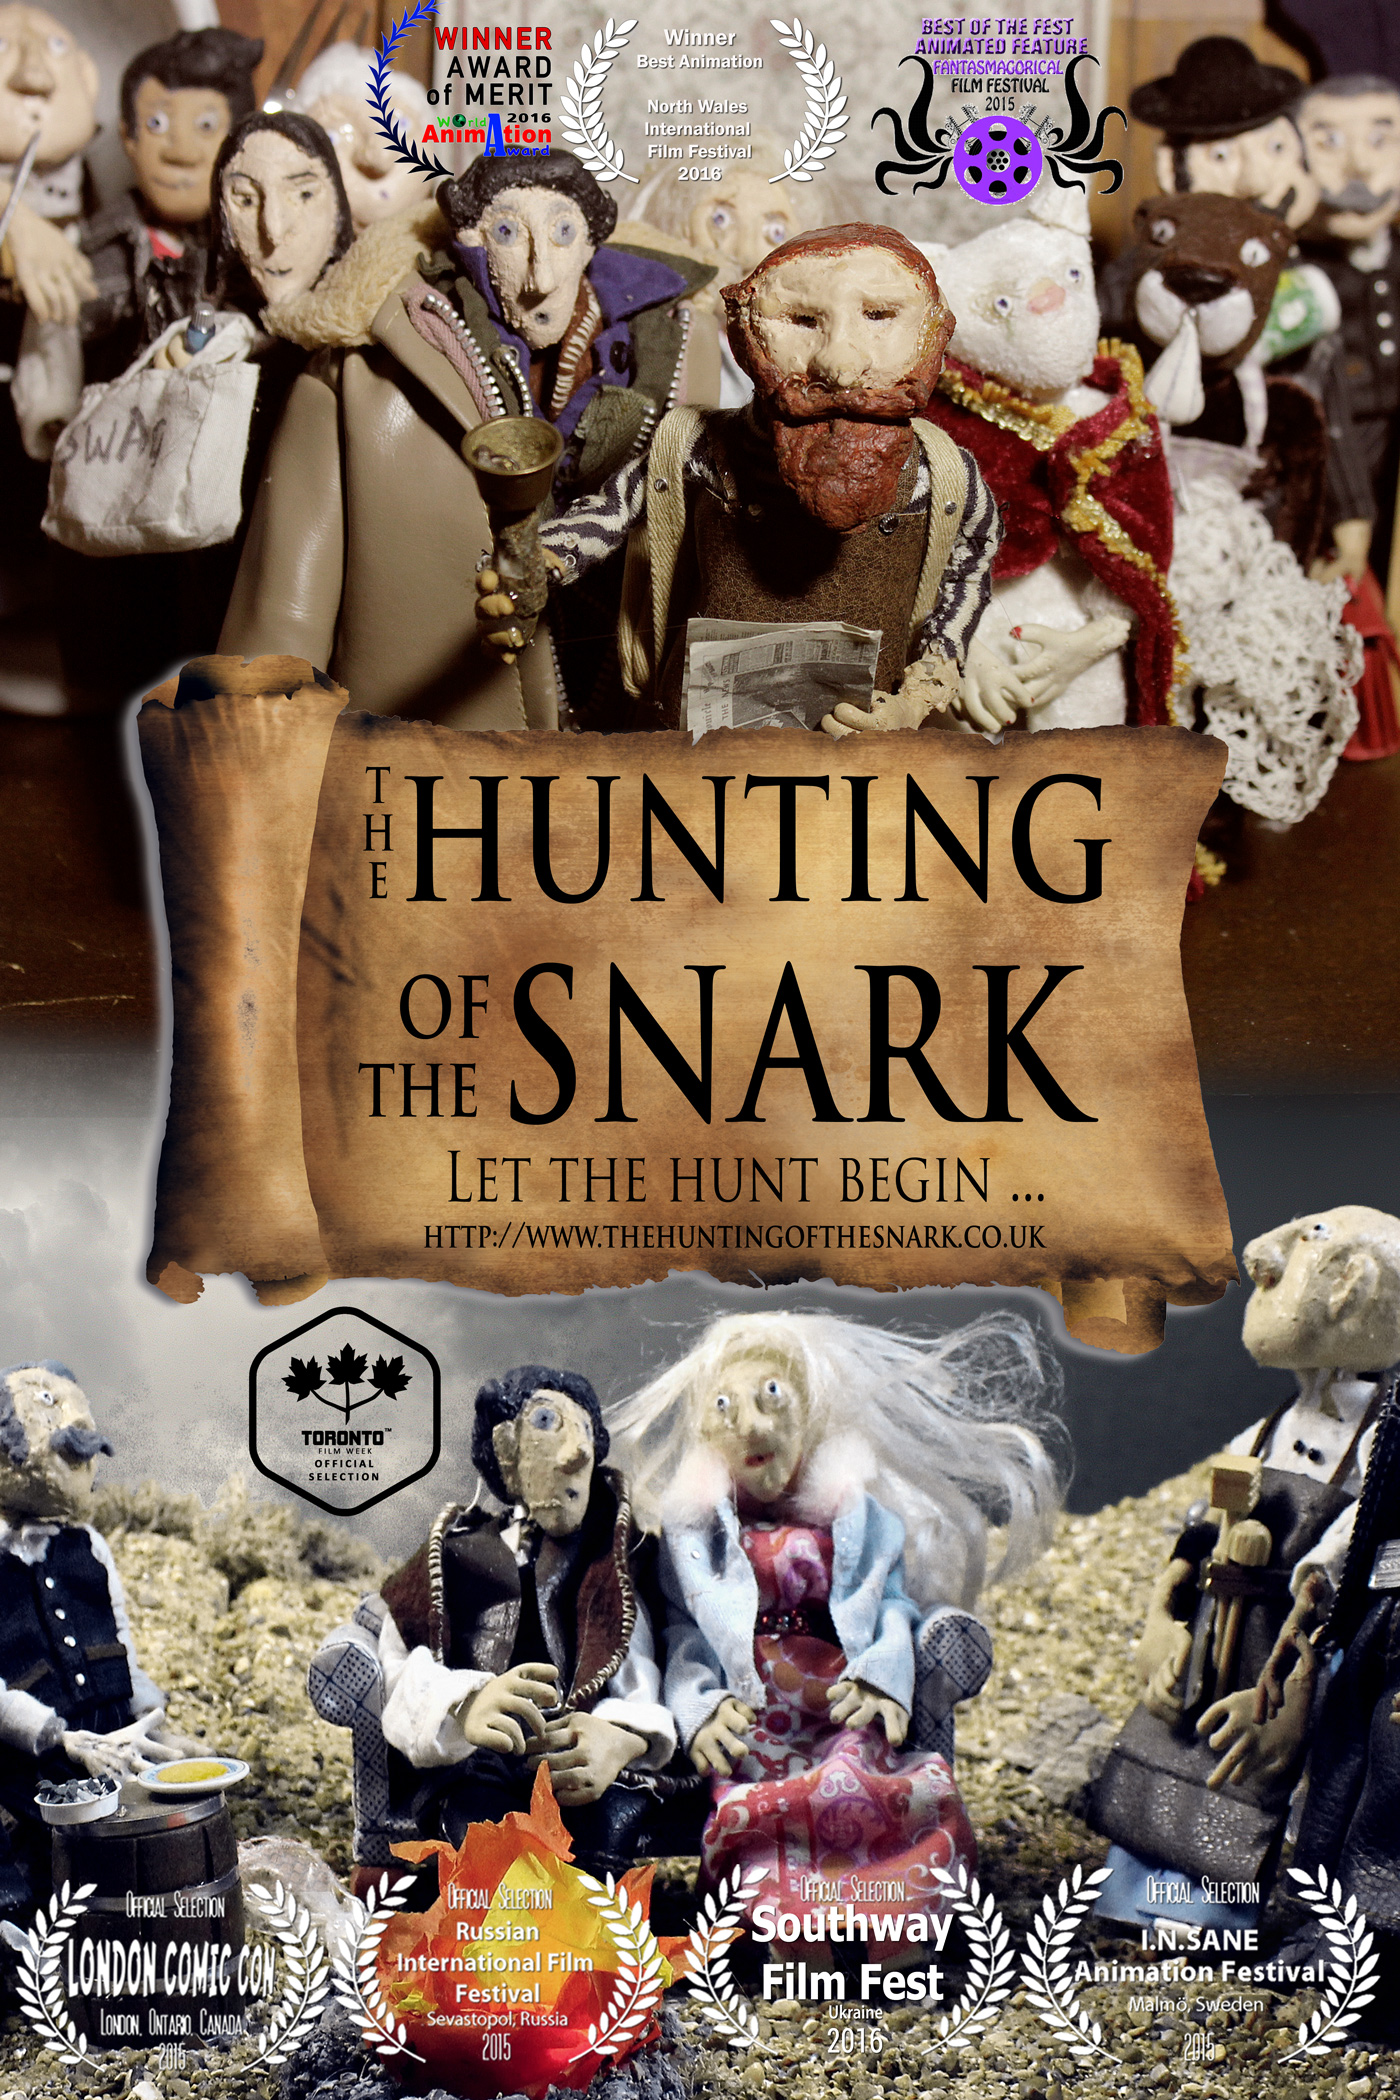 Lewis Carroll's Hunting of the Snark, by Sarane Bensusan